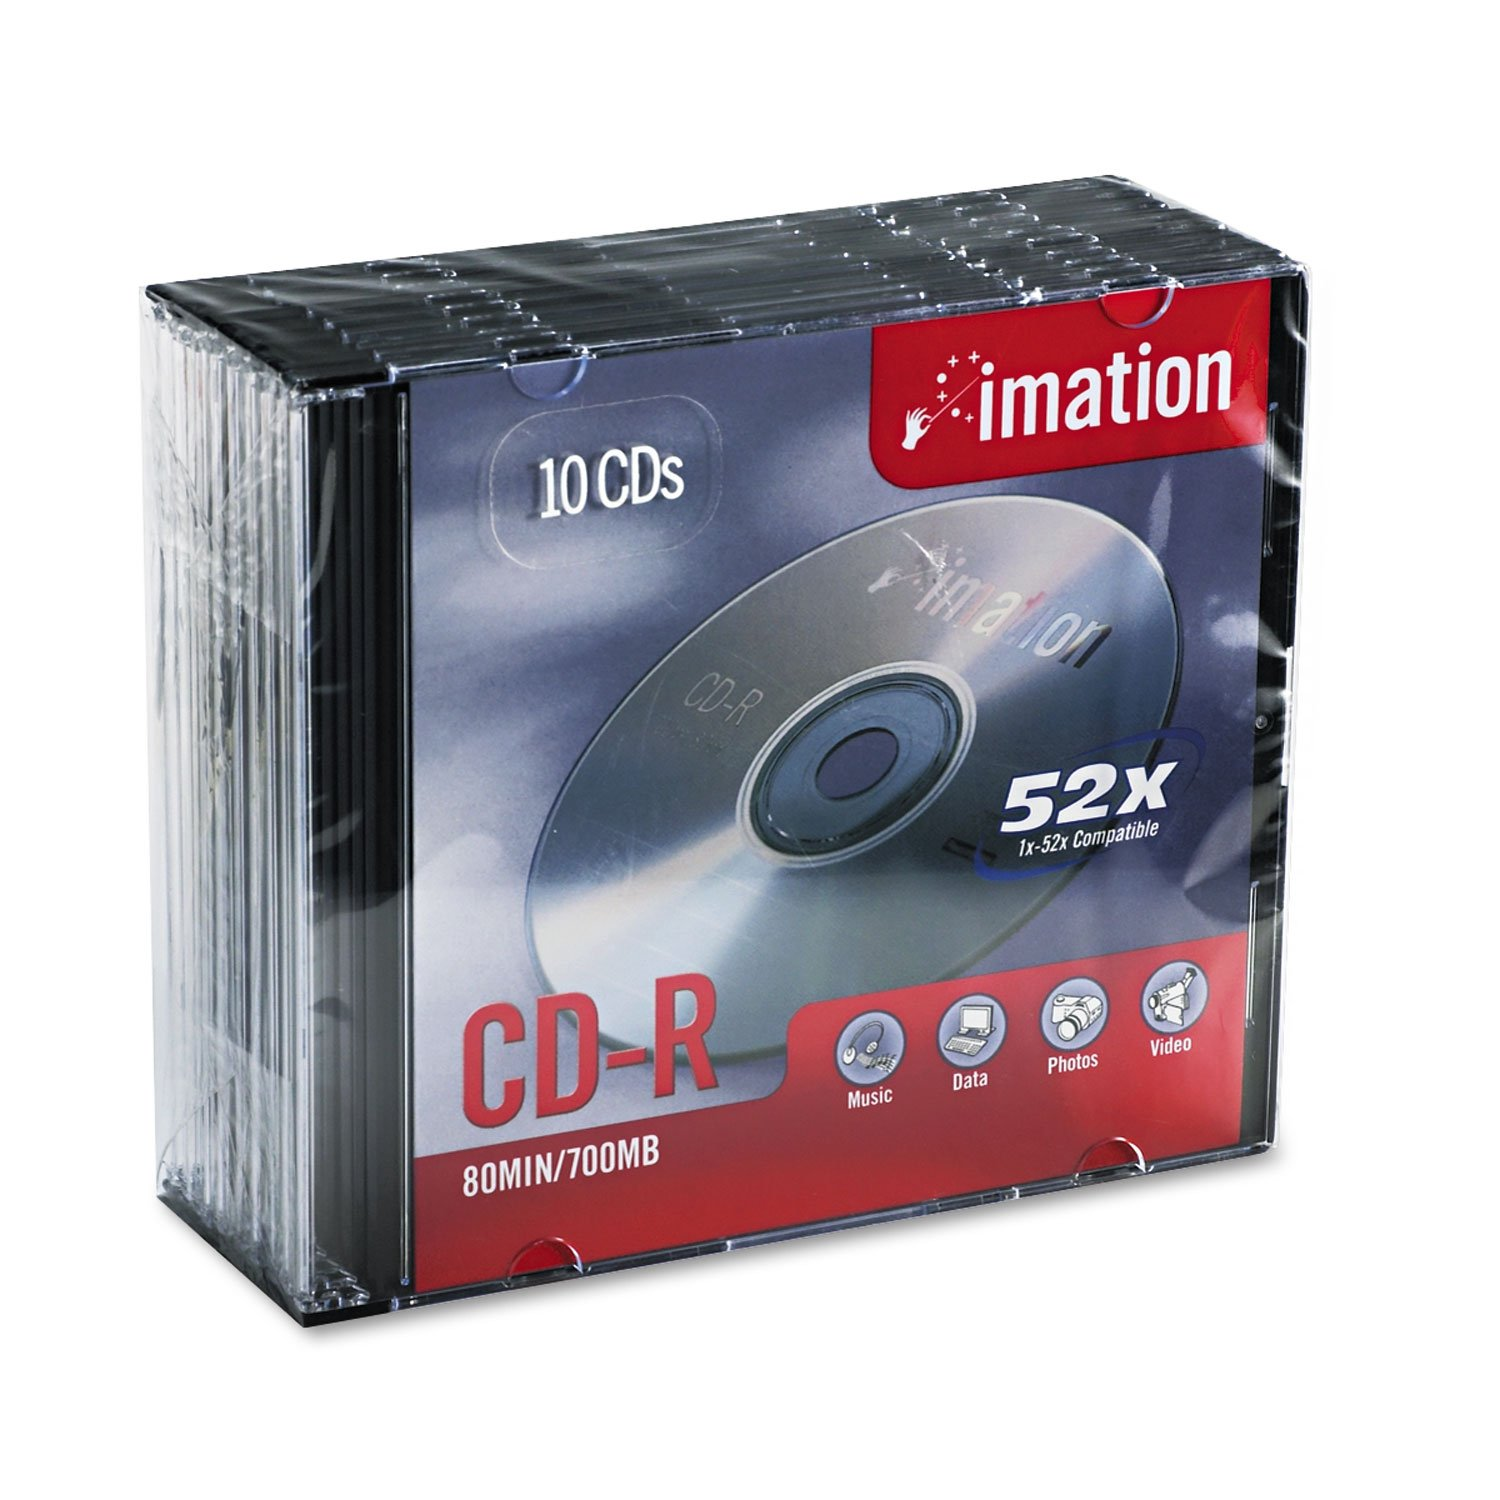 Imation IMN17332 CD Recordable Media, CD-R, 52x, 700 MB, 10 Pack Jewel Case S.P. Richards Company